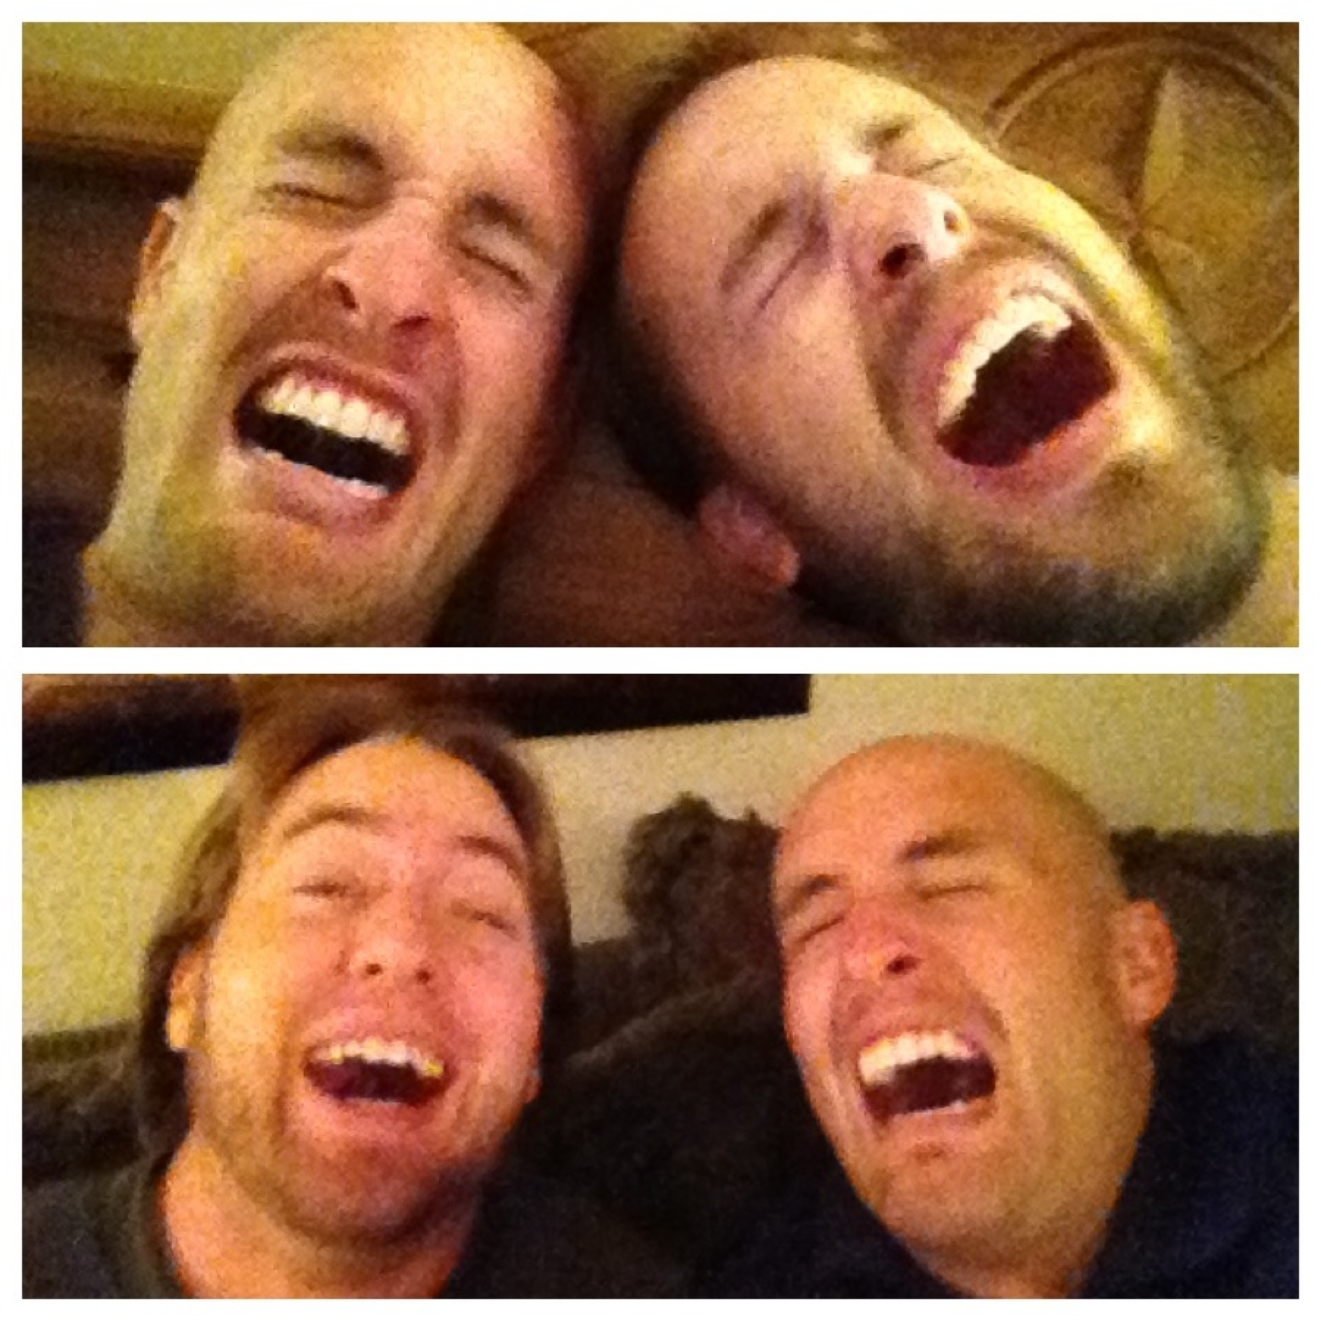 That's my brother, Jeff, and me on top. And my brother, Brad, and me on bottom. We're idiots. But we have a lot of fun.